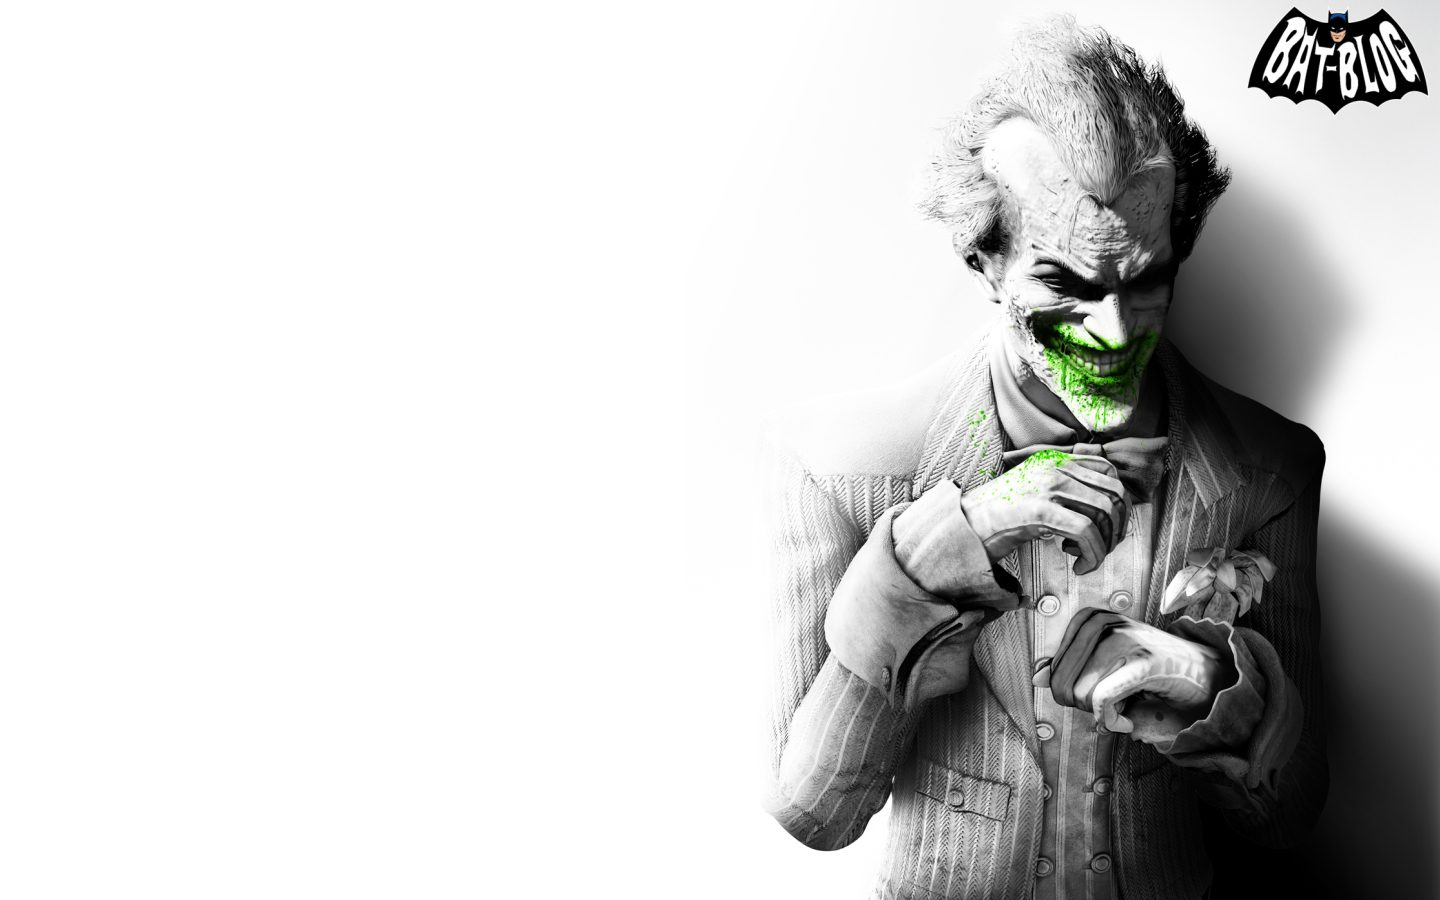 Batman Arkham City Harley Quinn Xbox 360 Wiring Diagrams Buy Circuit Boardsell Boardsuppliers Boardcircuit Hd Wallpaper Wallpapersafari Knight One